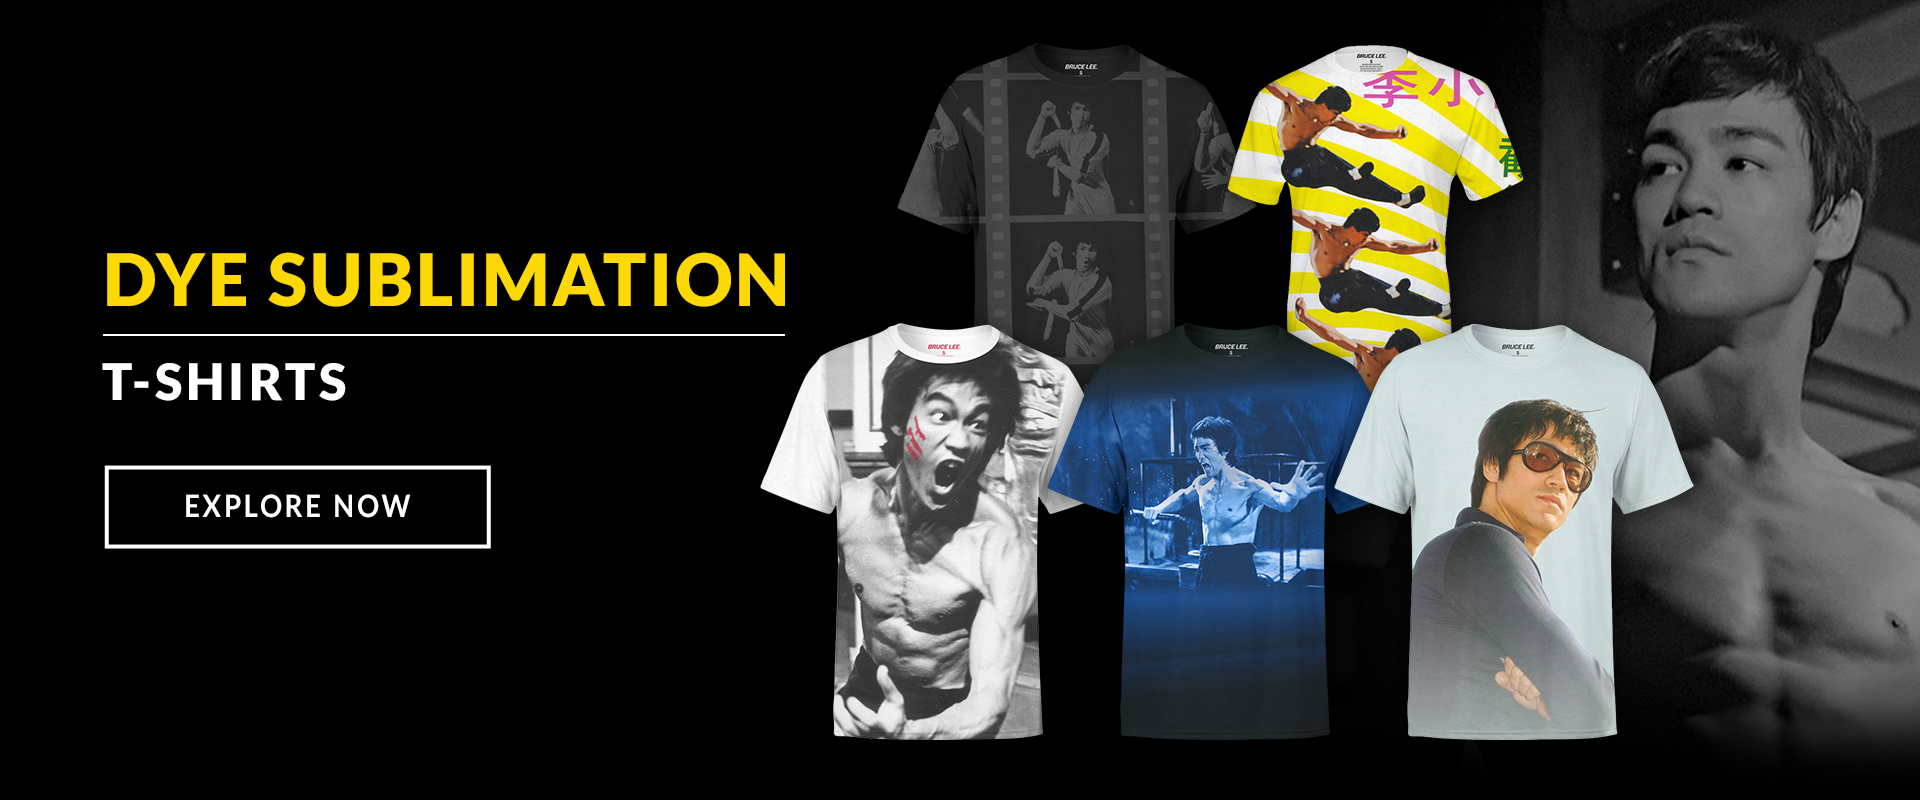 Bruce Lee Dye Sublimation Shirts